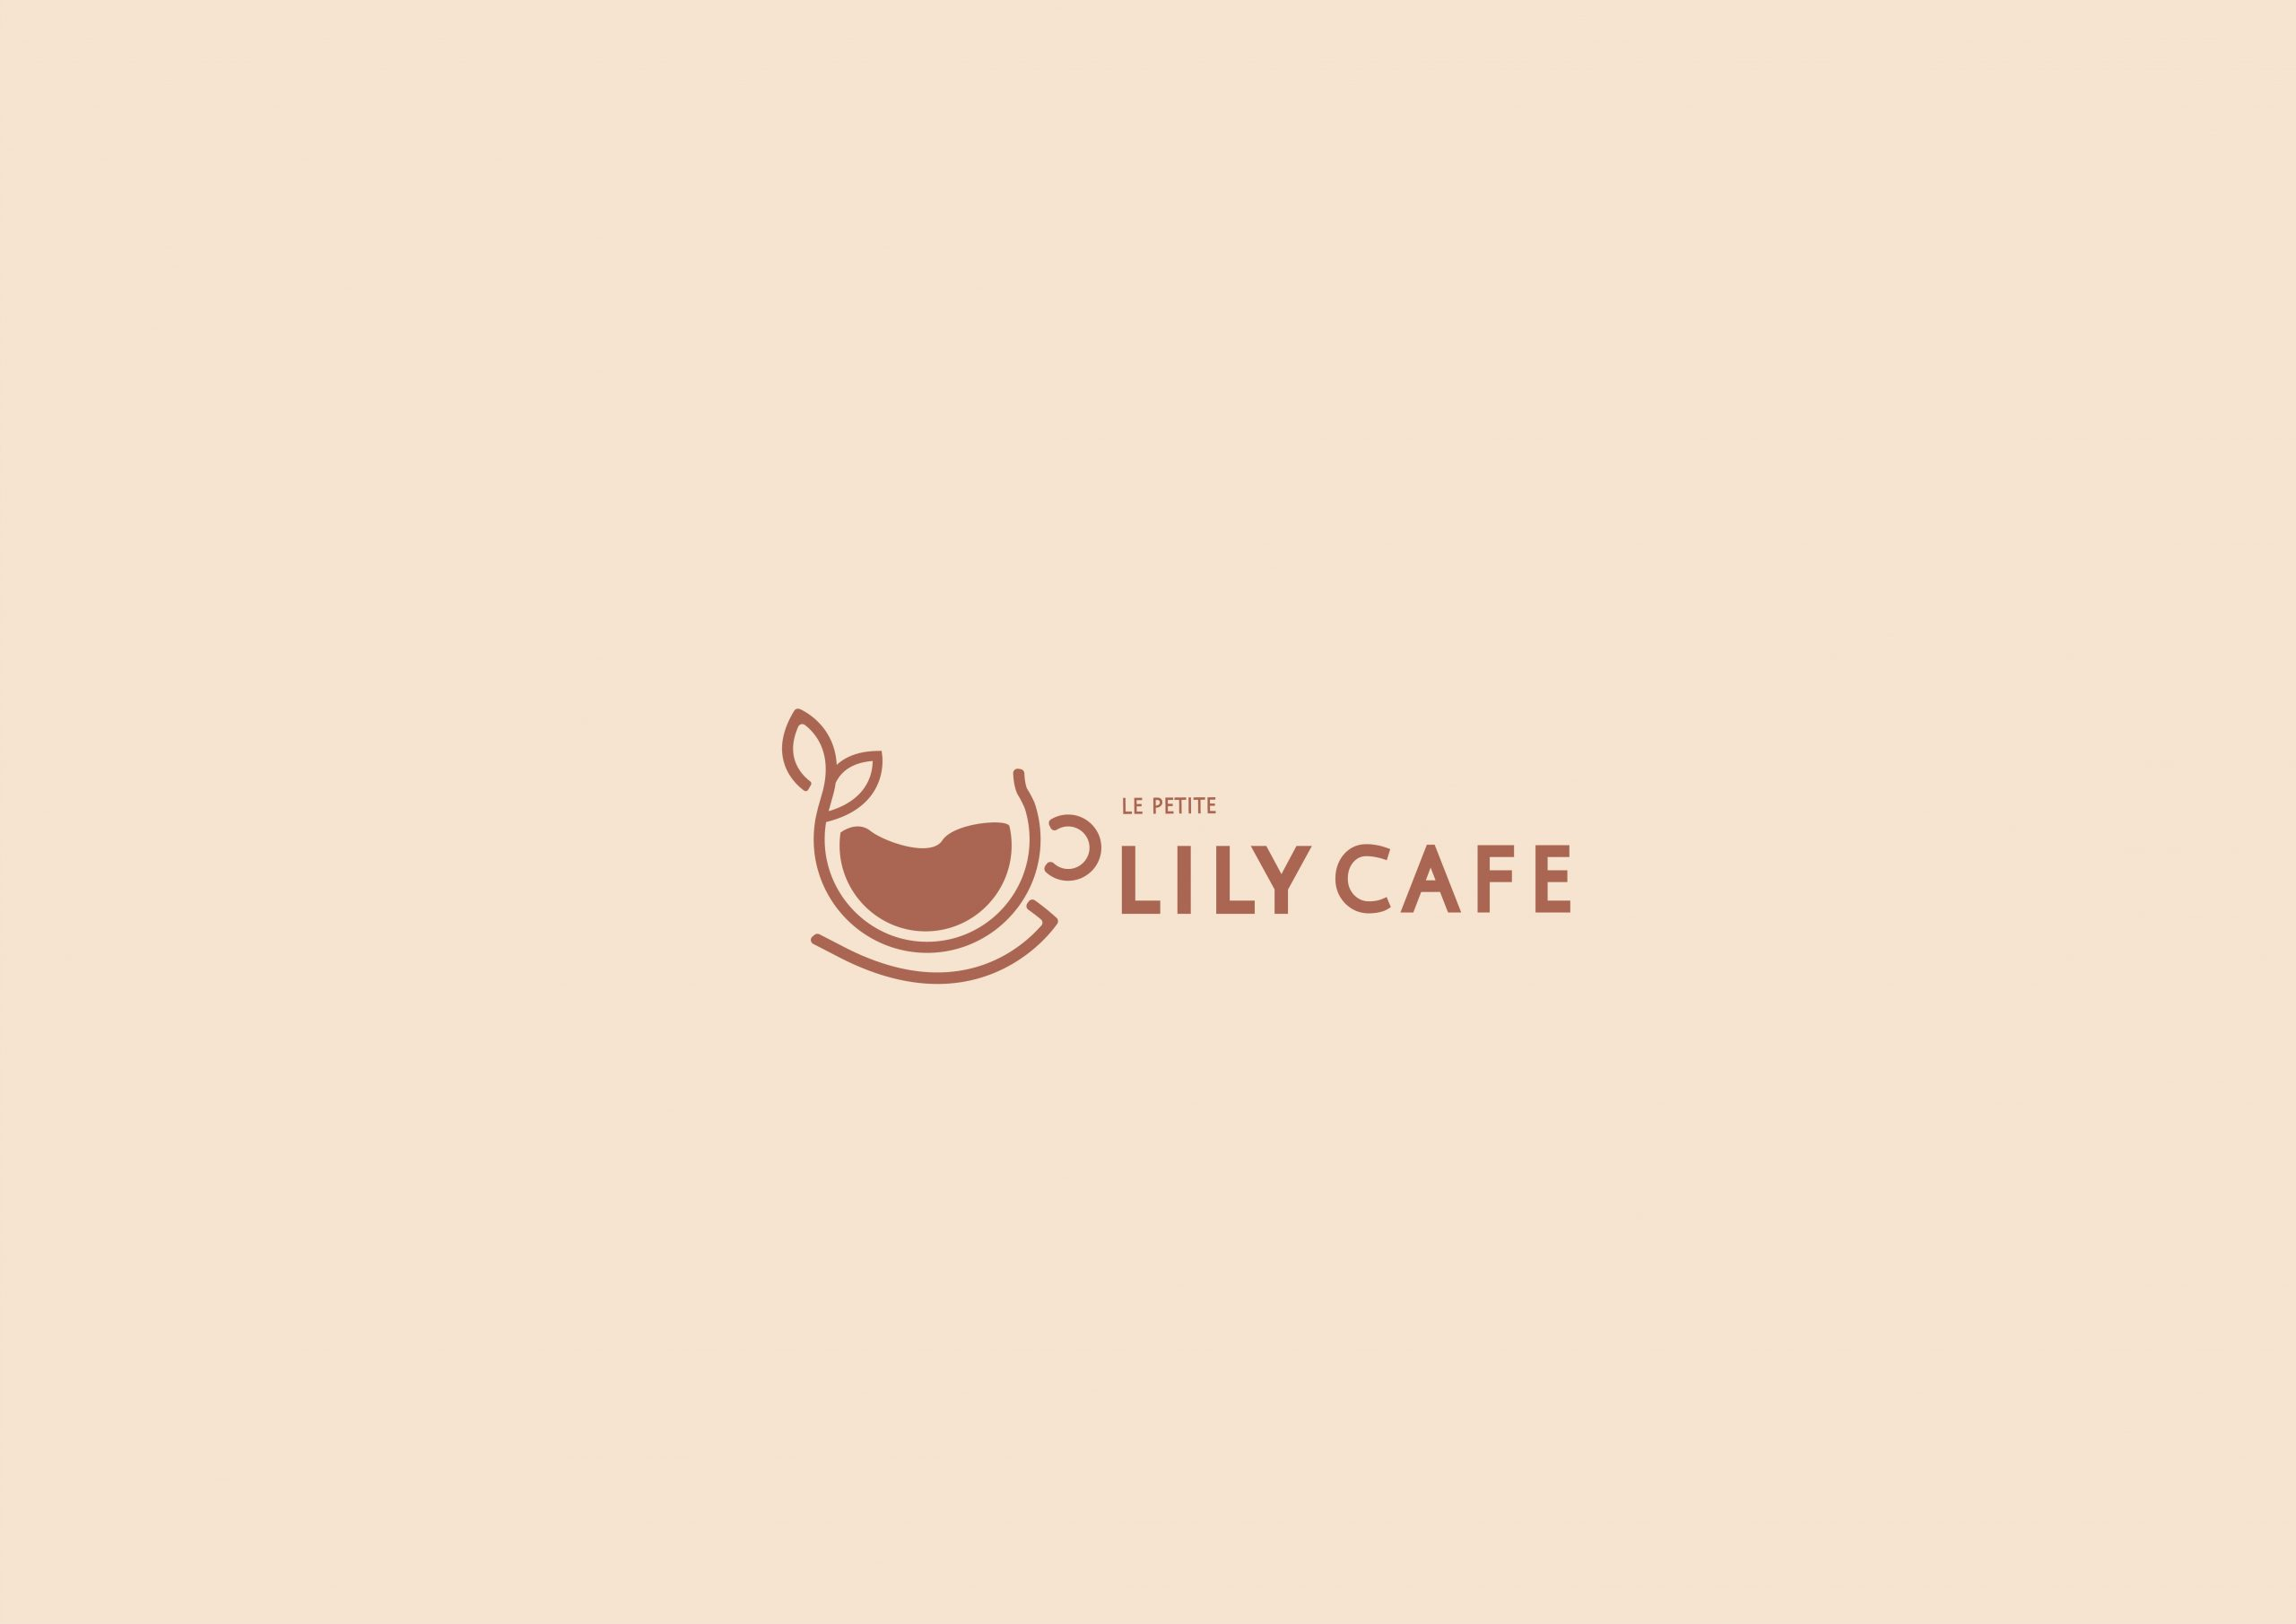 Lily cafe purpose 01 scaled